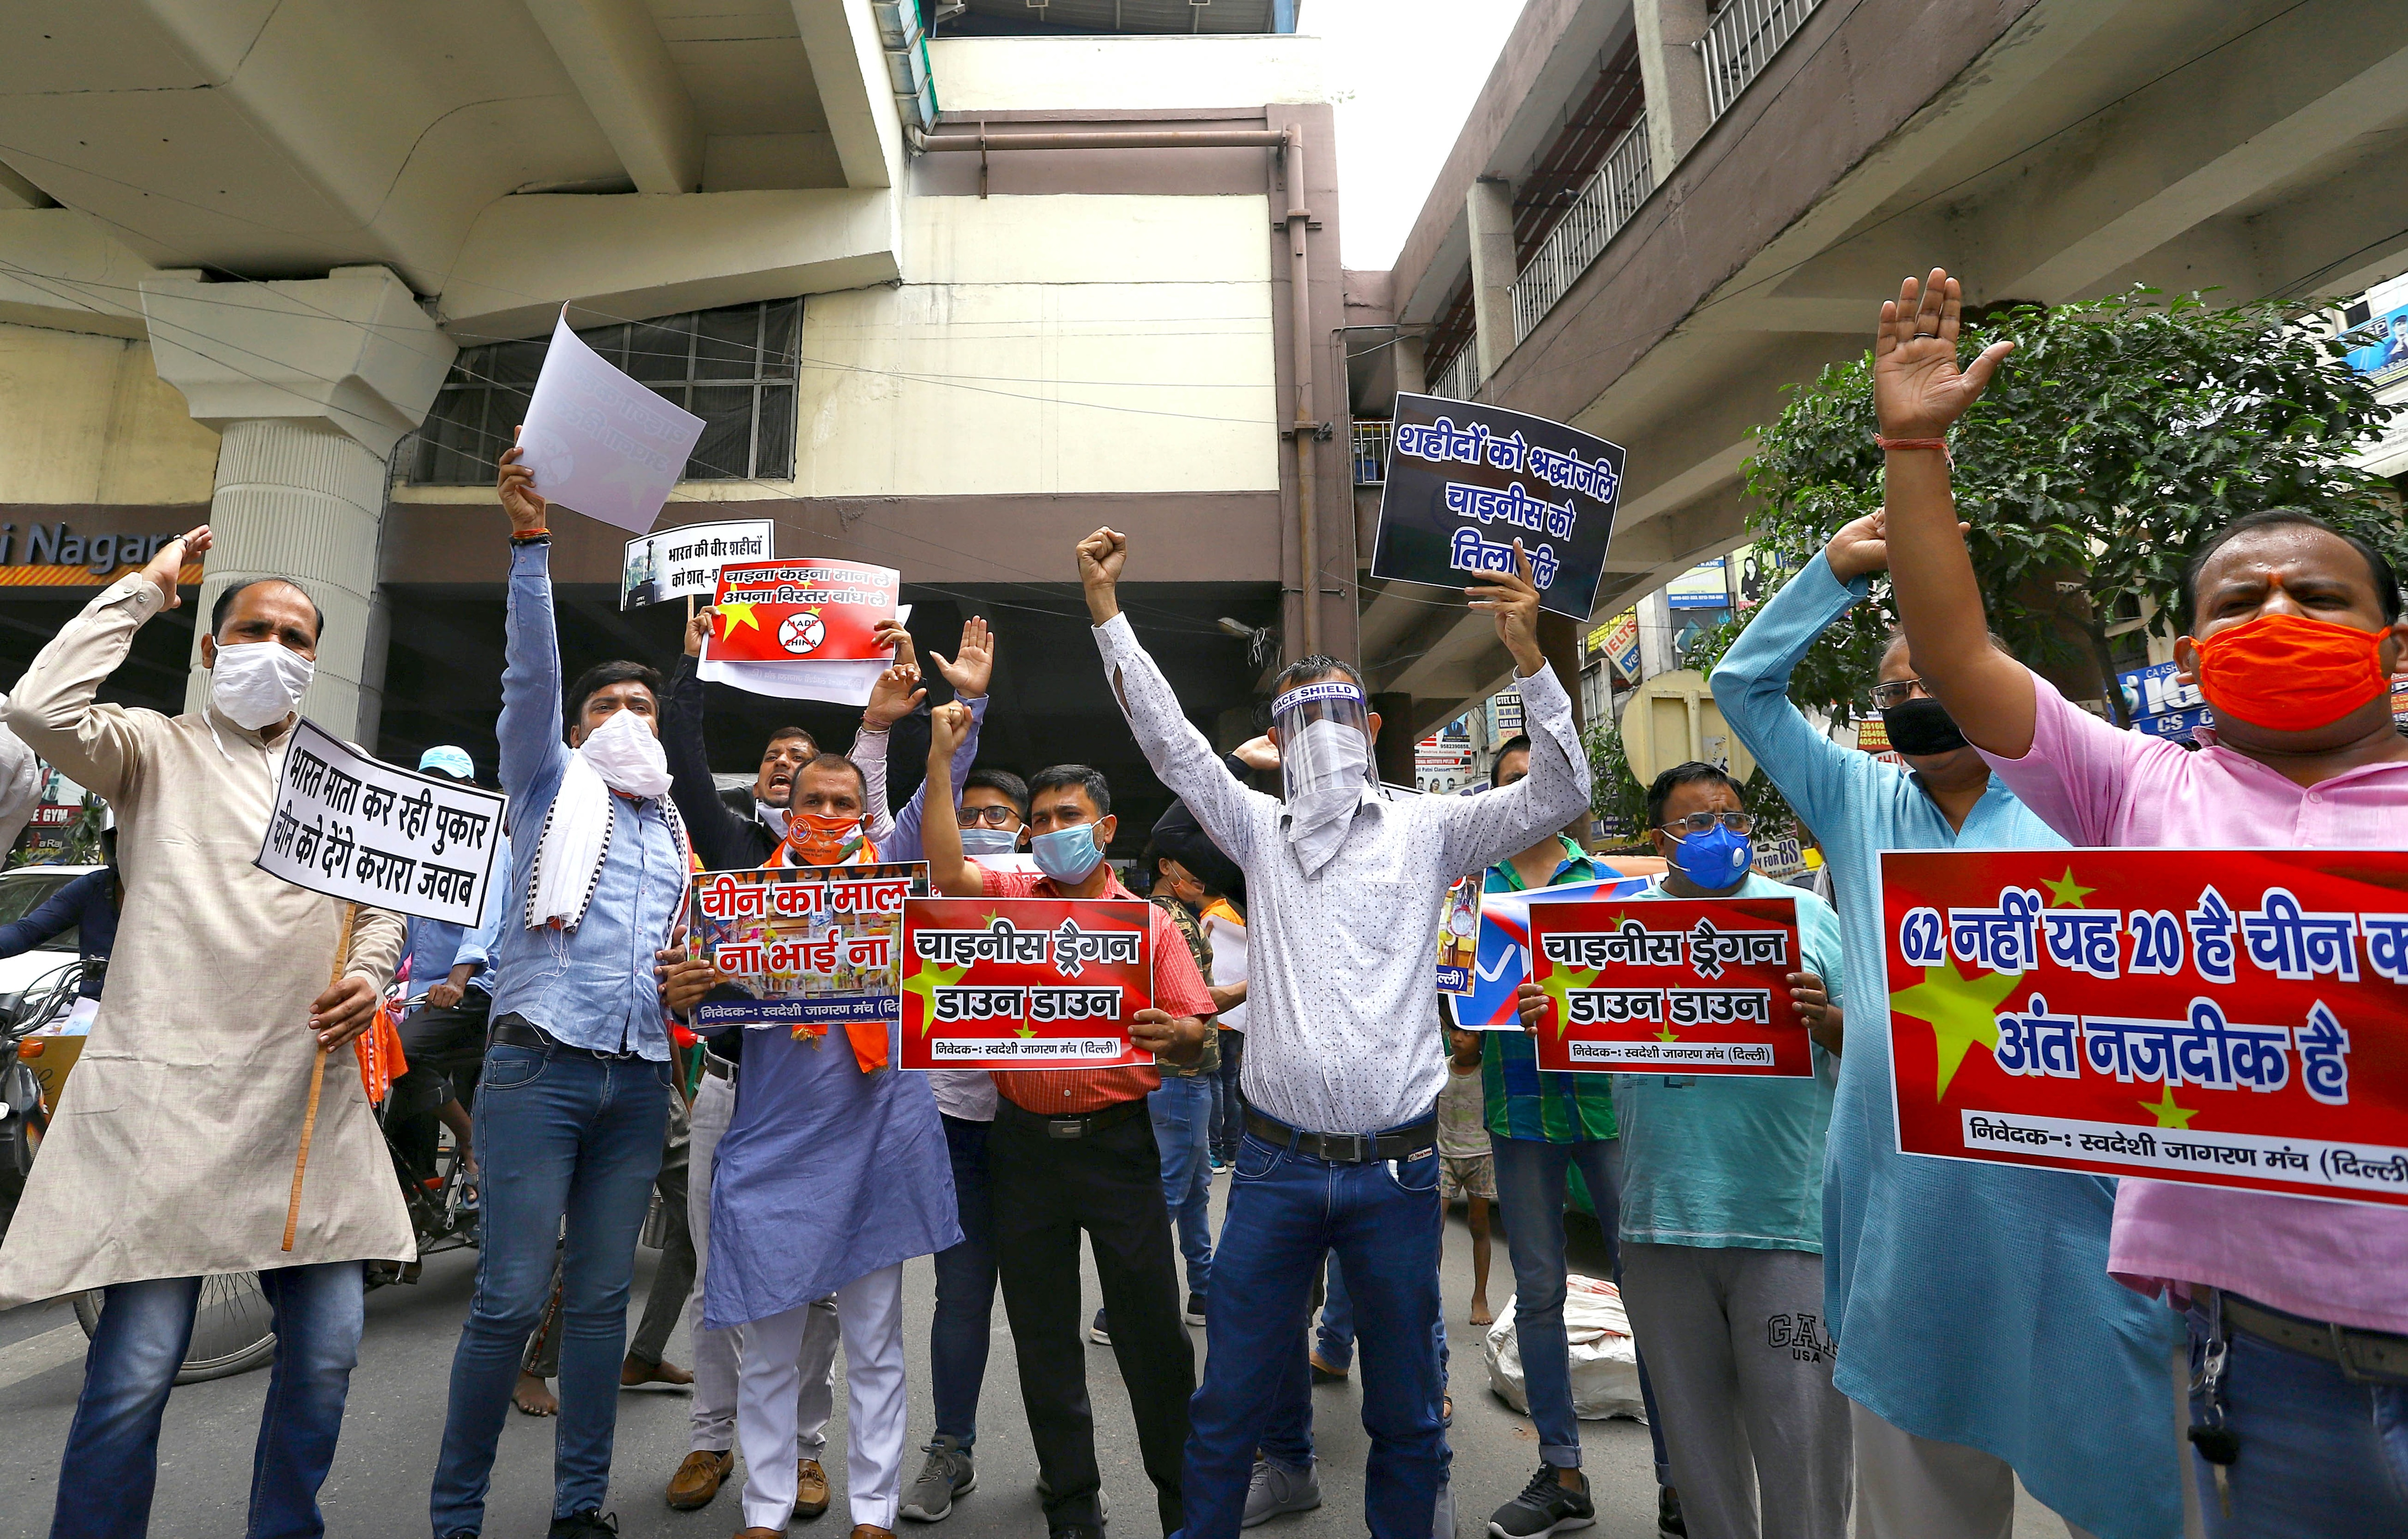 Swadeshi Jagran Manch workers hold a placard and shout slogans as they protest against Chinese goods and against the killing of Indian soldiers during India China clash, at Laxmi Nagar in New Delhi on Saturday.